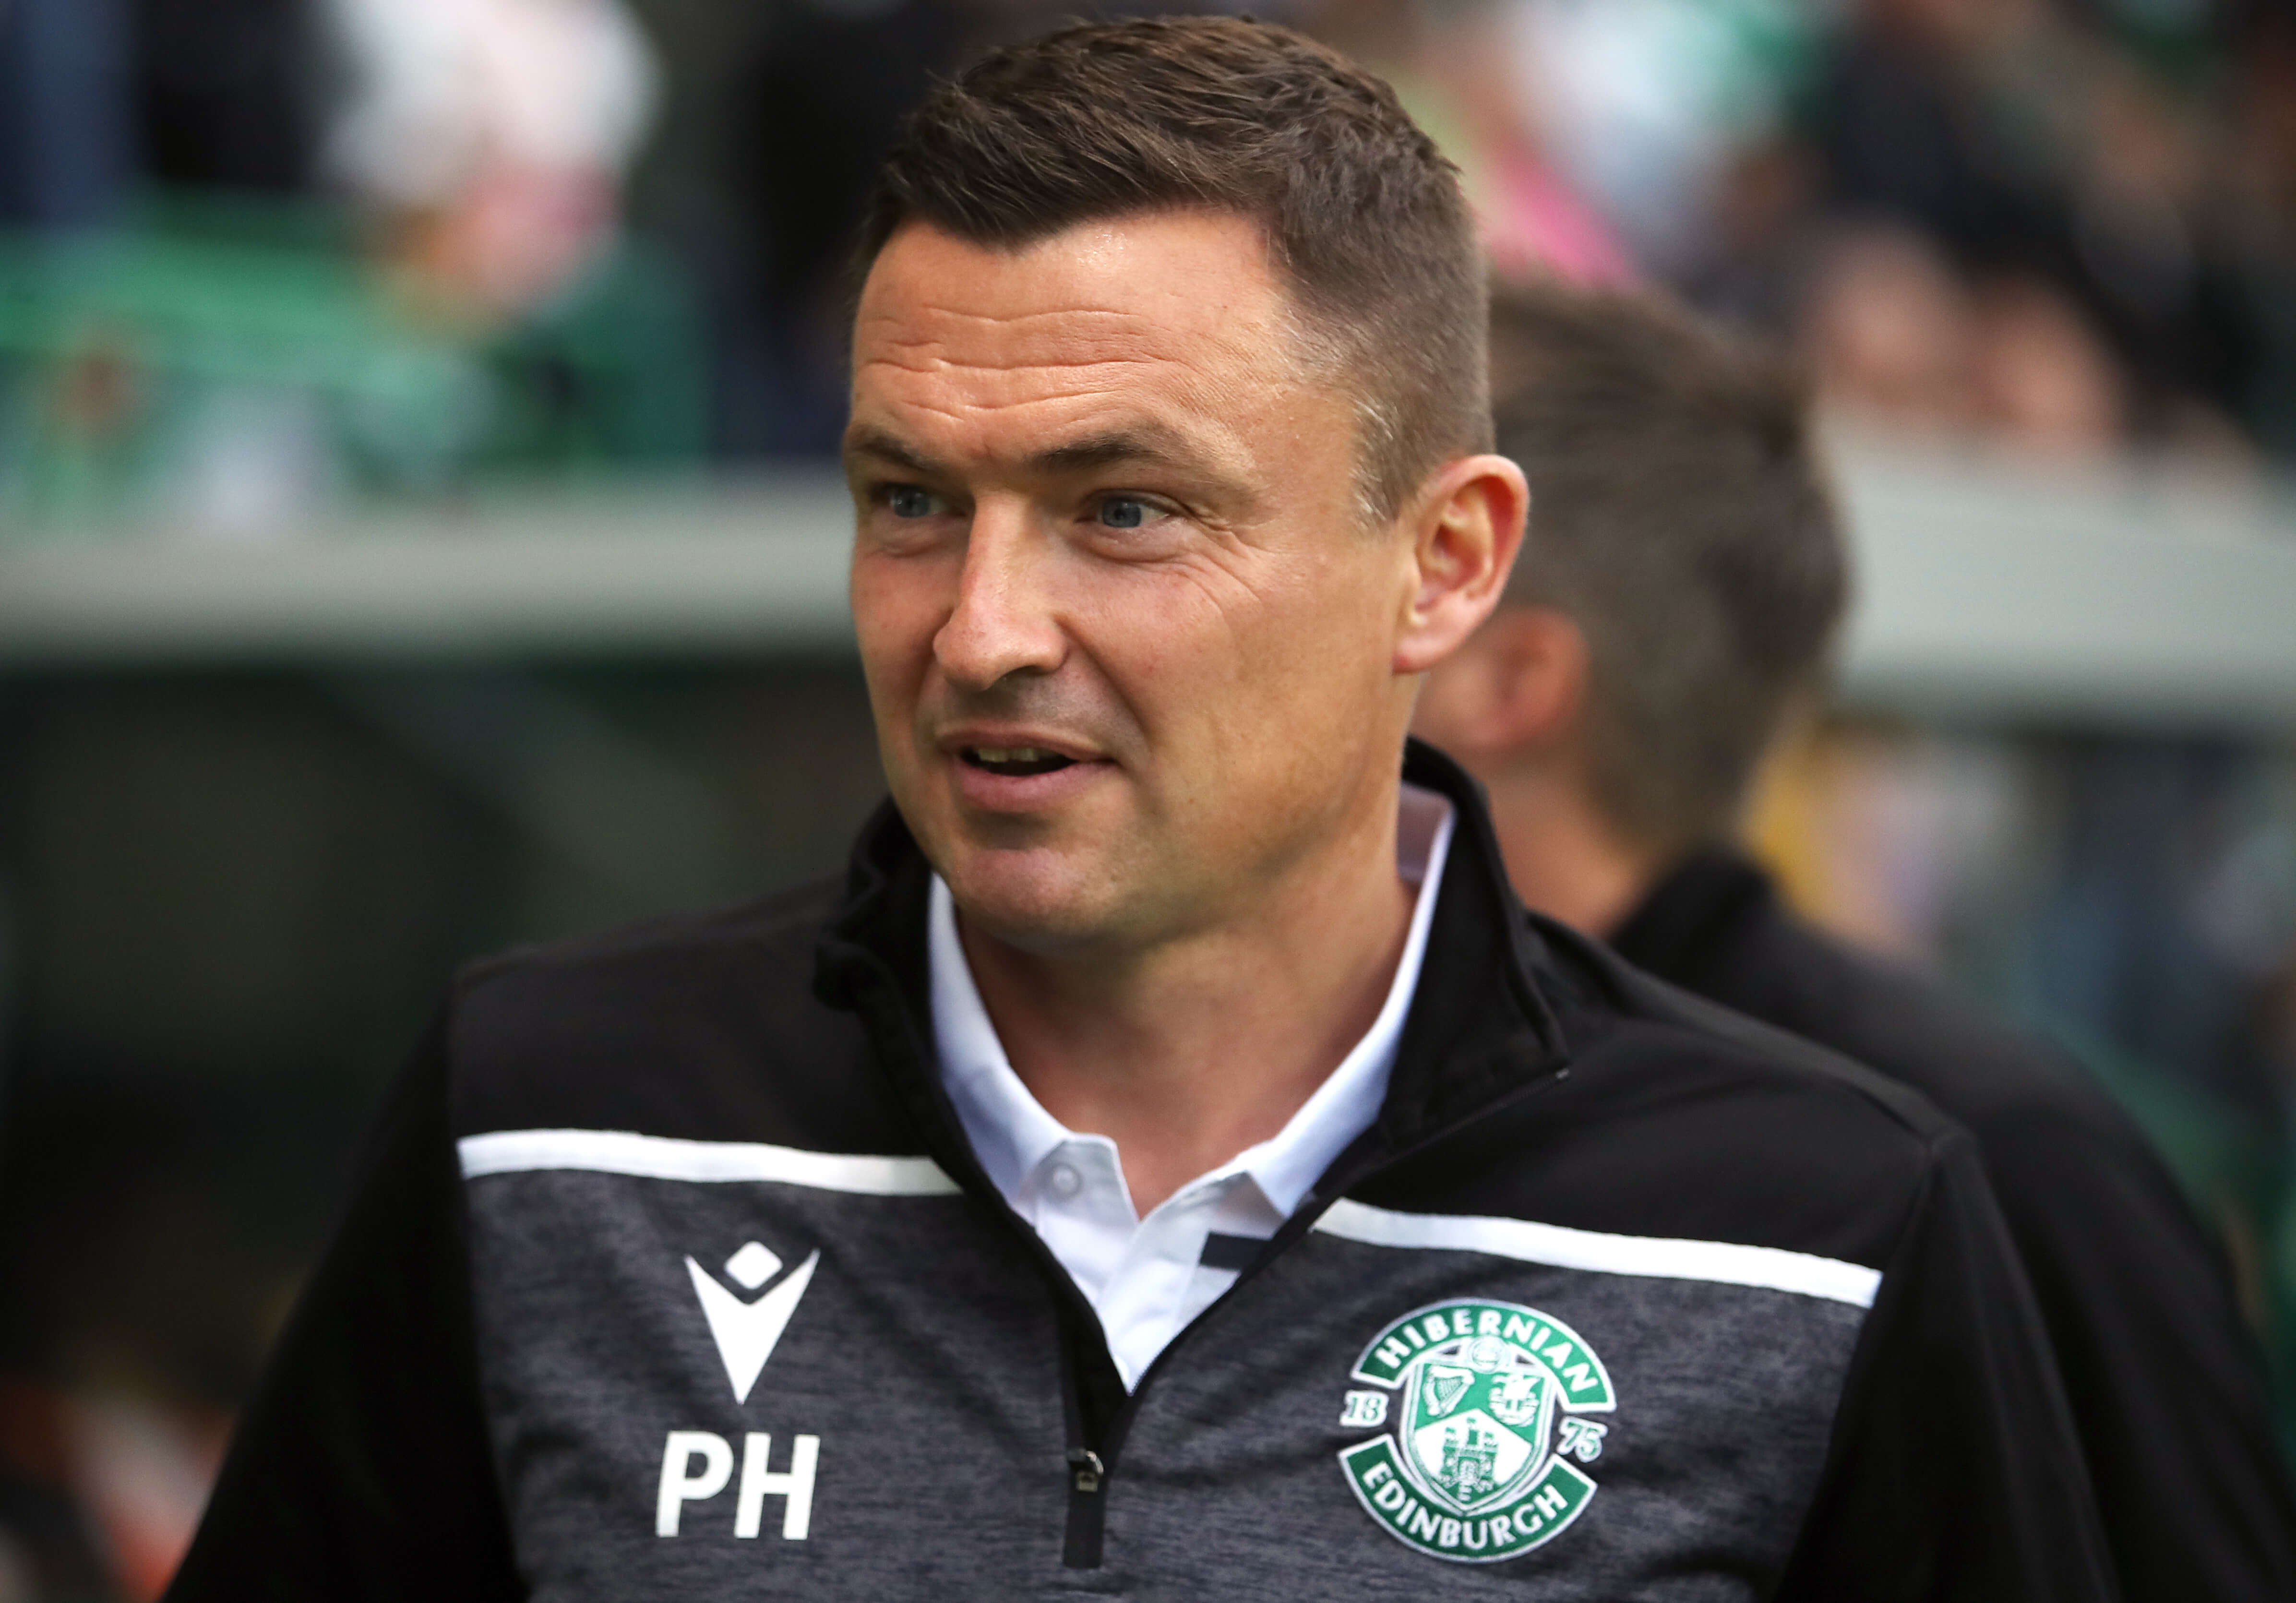 Could The Edinburgh Derby Be An Opportunity For Heckingbottom To Turn Things Around For Hibs?